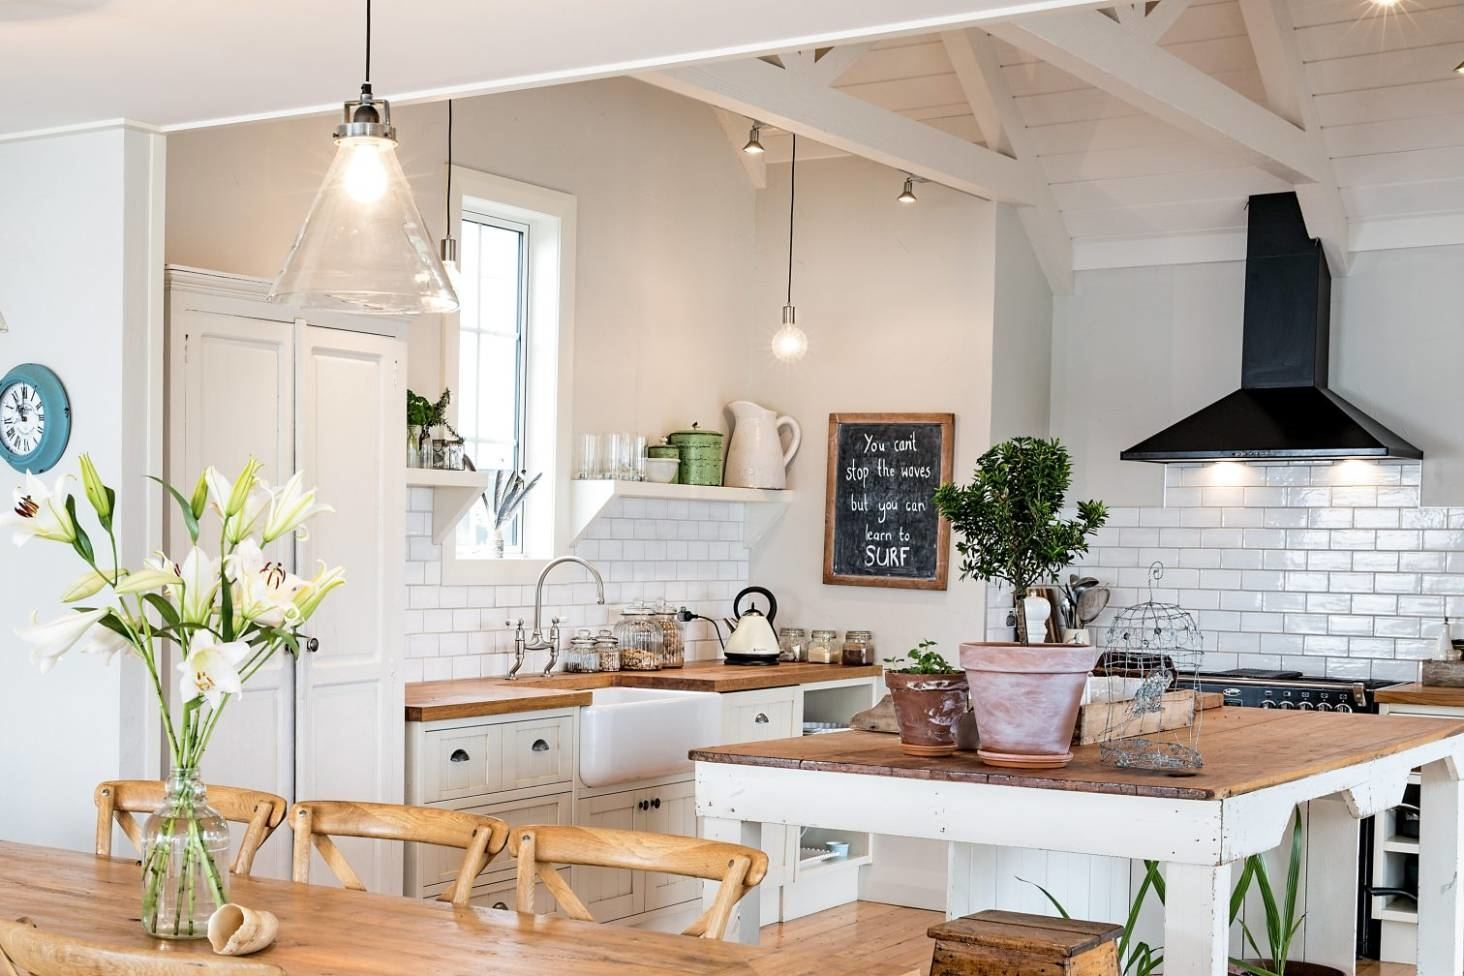 Some ways to work it in include doing up a feature wall using wood panels or as a trimming to a kitchen opening